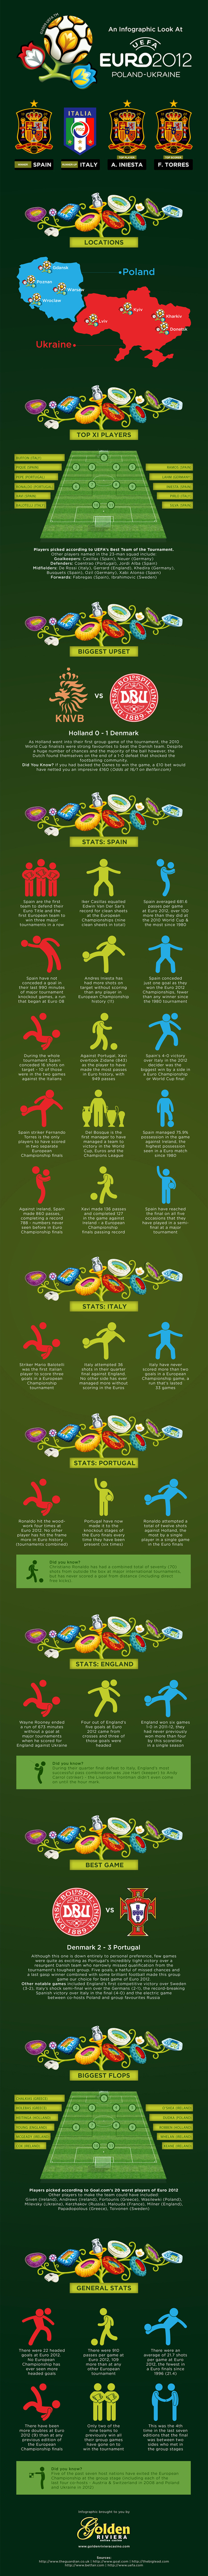 An Infographic Look At Euro 2012 | Visual.ly | Infographics for English class | Scoop.it